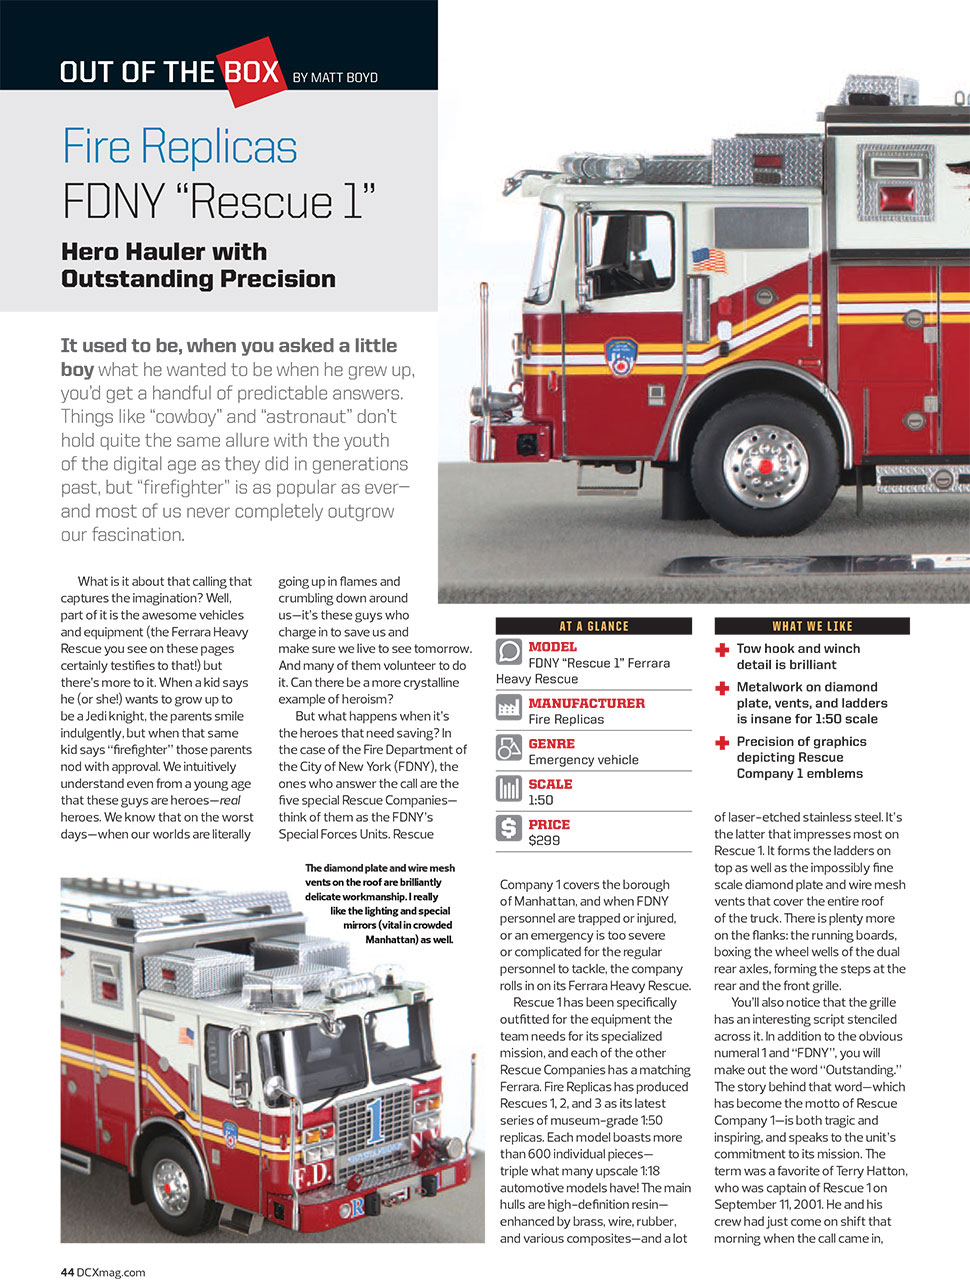 FDNY Rescue 1 article in Diecast X magazine